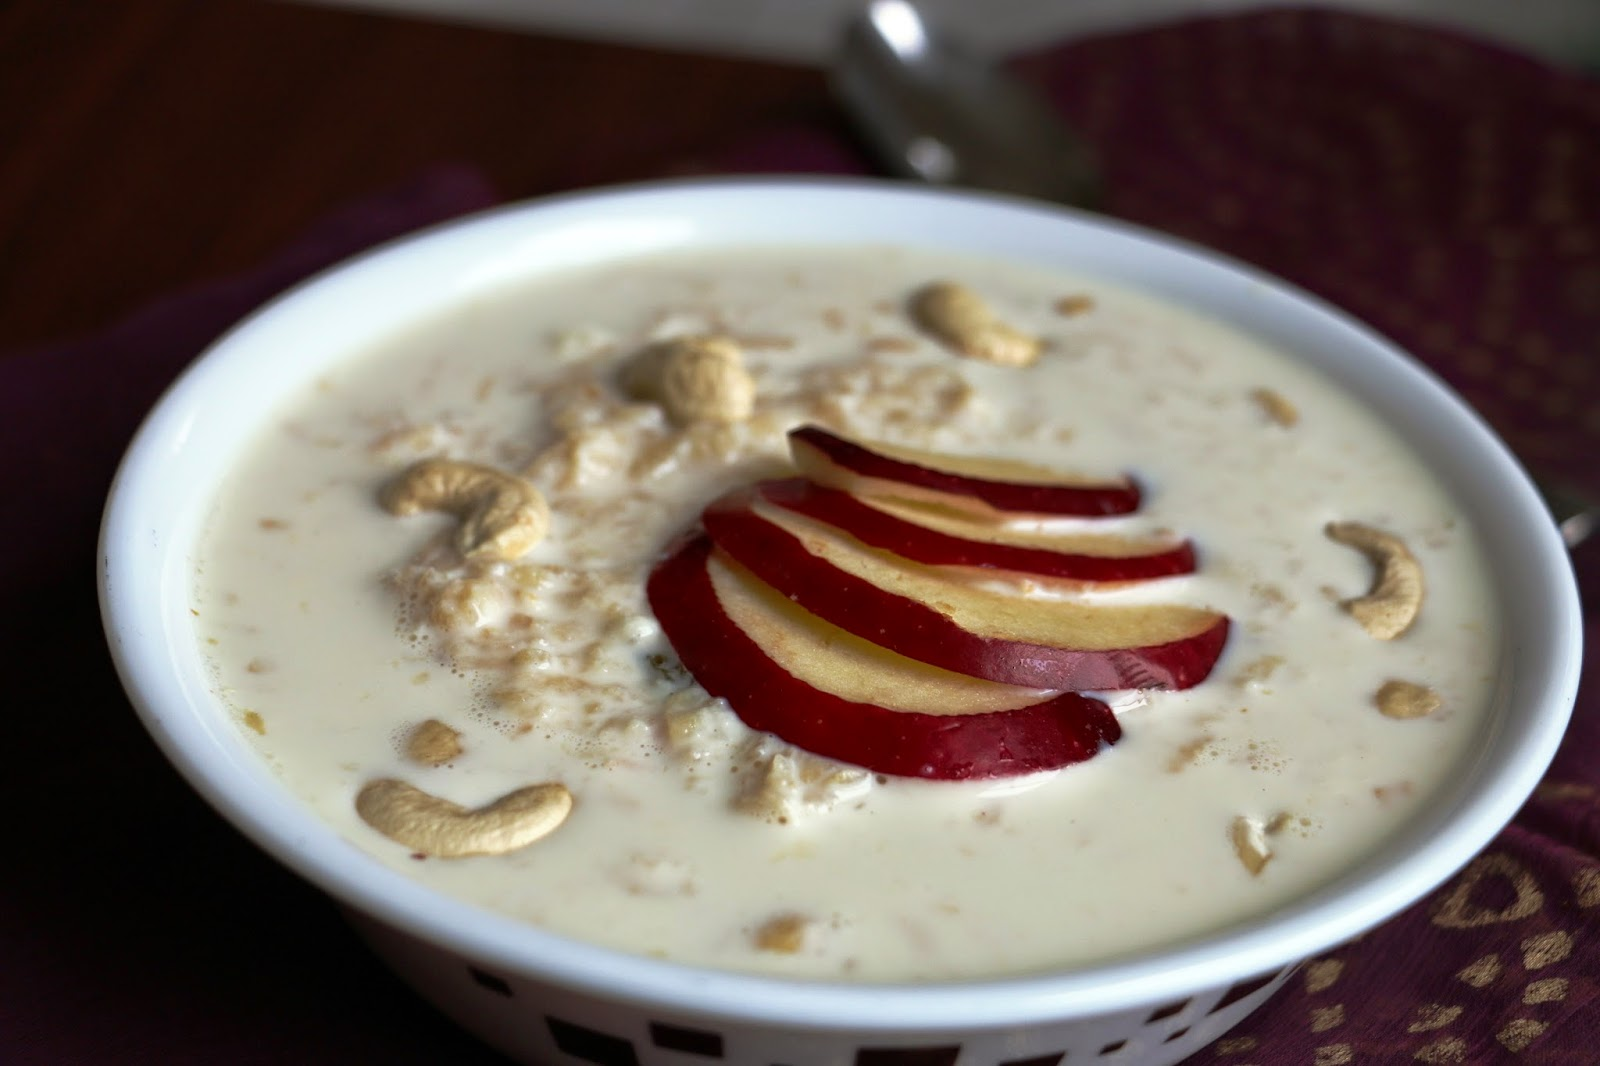 Apple rabri the most popular low-calorie Indian desserts